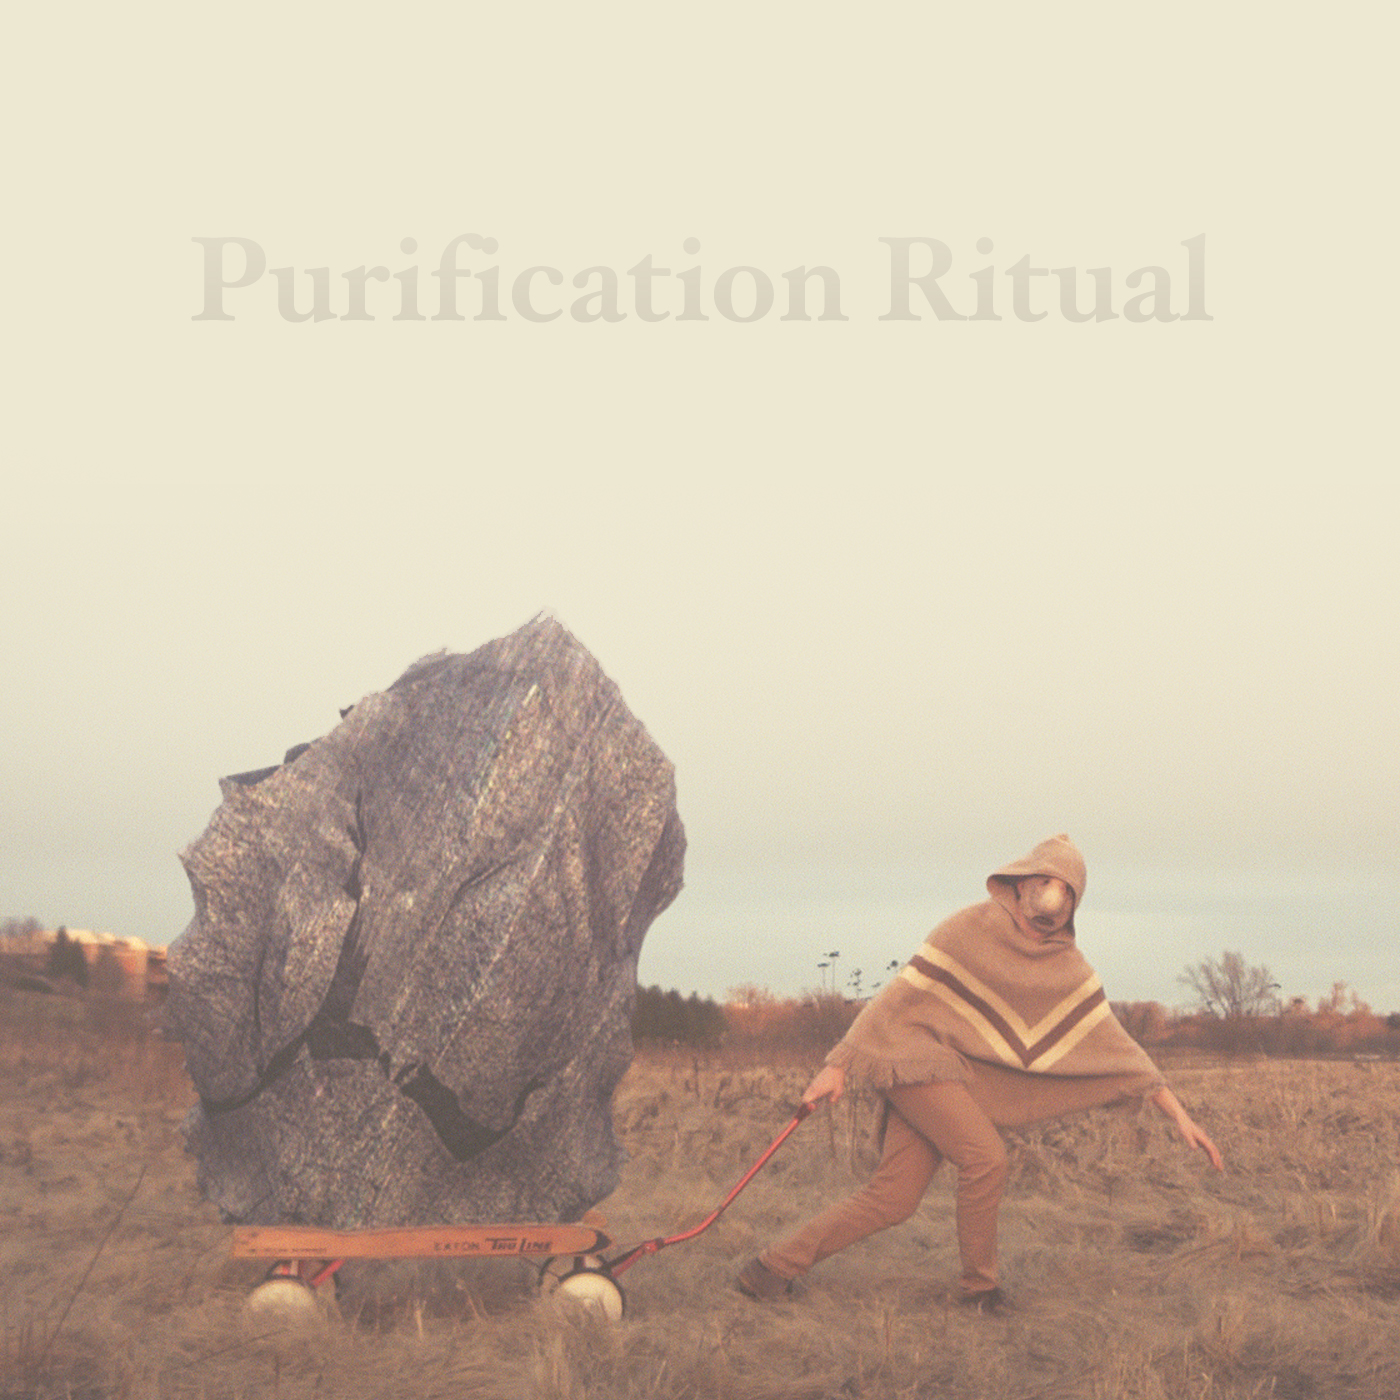 Purification Ritual · August 2017